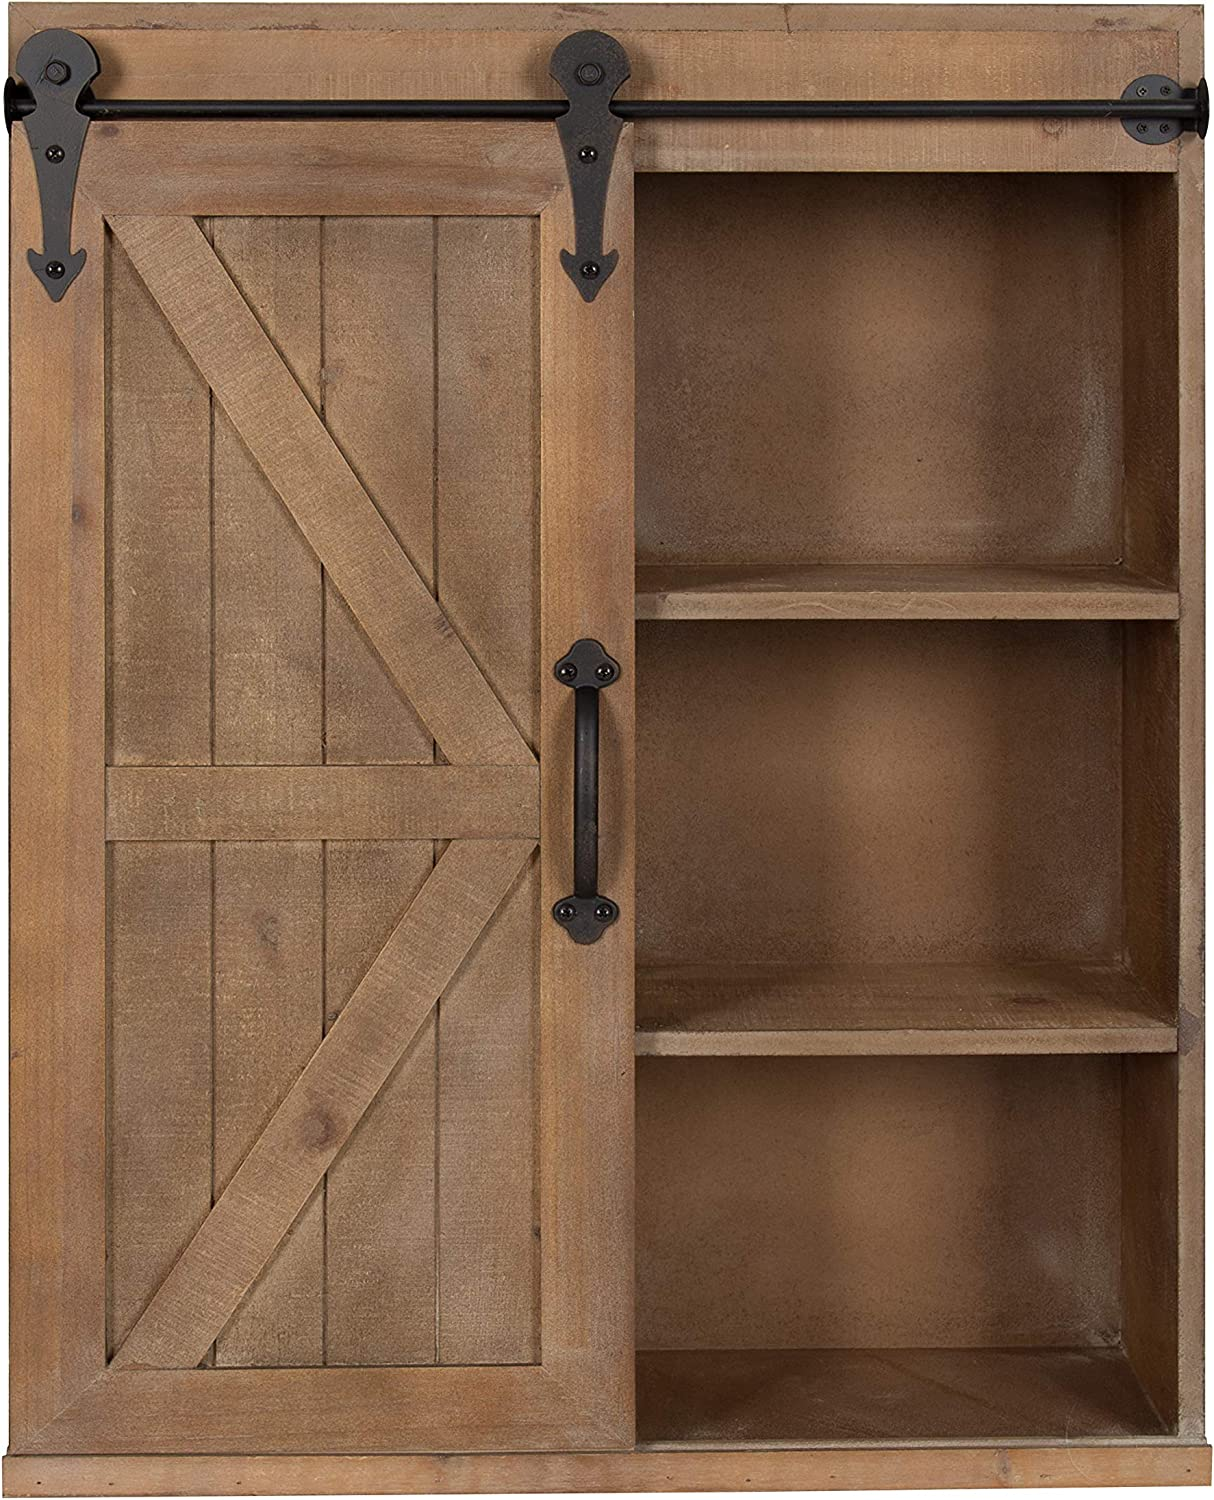 Amazon Com Kate And Laurel Cates Wood Wall Storage Cabinet With Sliding Barn Door Rustic Brown Home Kitchen